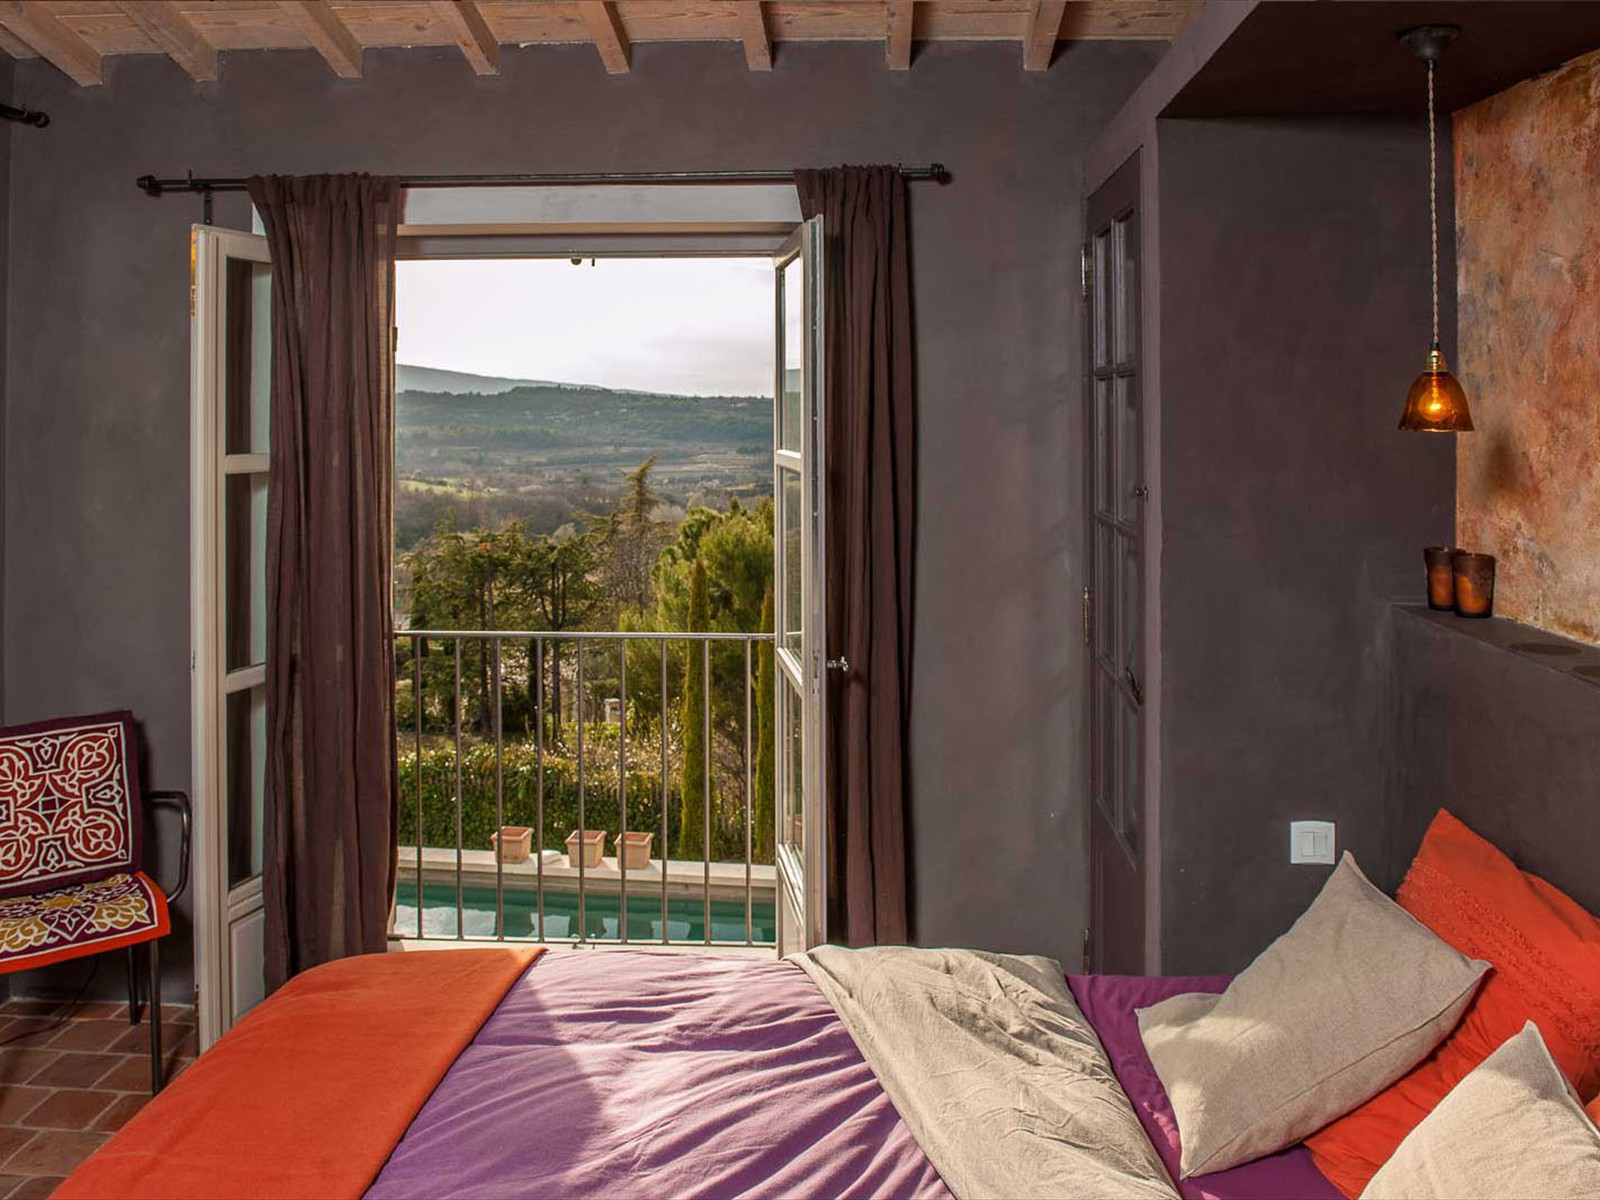 exclusive_rentals_provence_vacation_luxury_homes_holiday_rentals_mont_ventoux_luberon_12